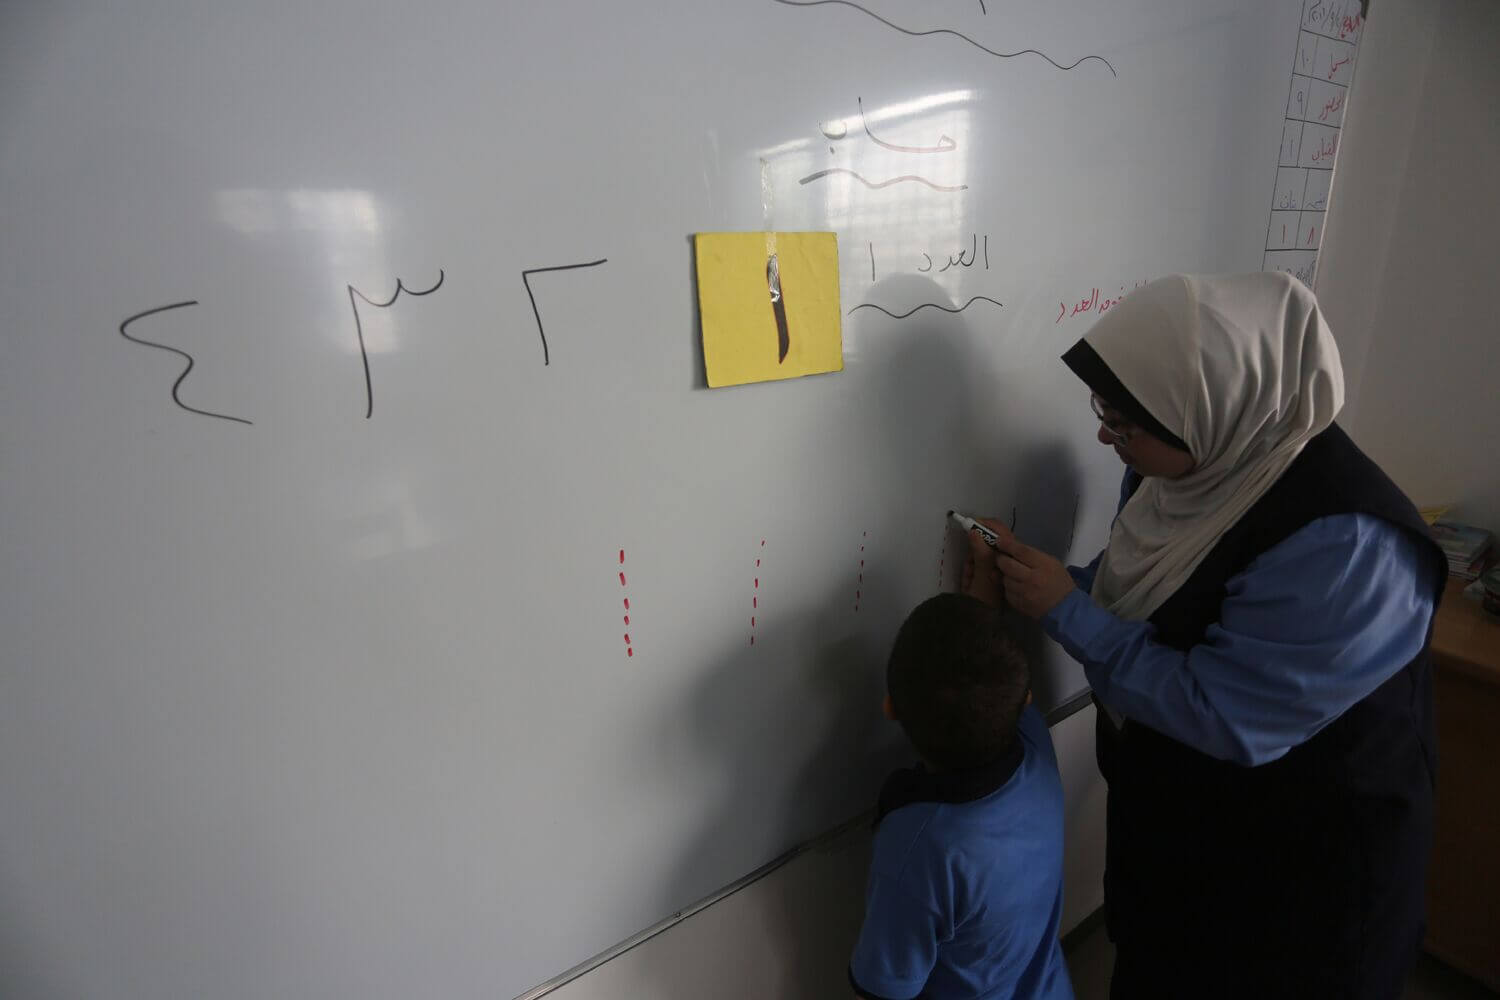 Hiba Shurafa guides a student drawing numbers on the classroom wipe board at the Right to Life Society school for mentally disabled students in the Gaza strip. (Photo: Mohammed Asad)